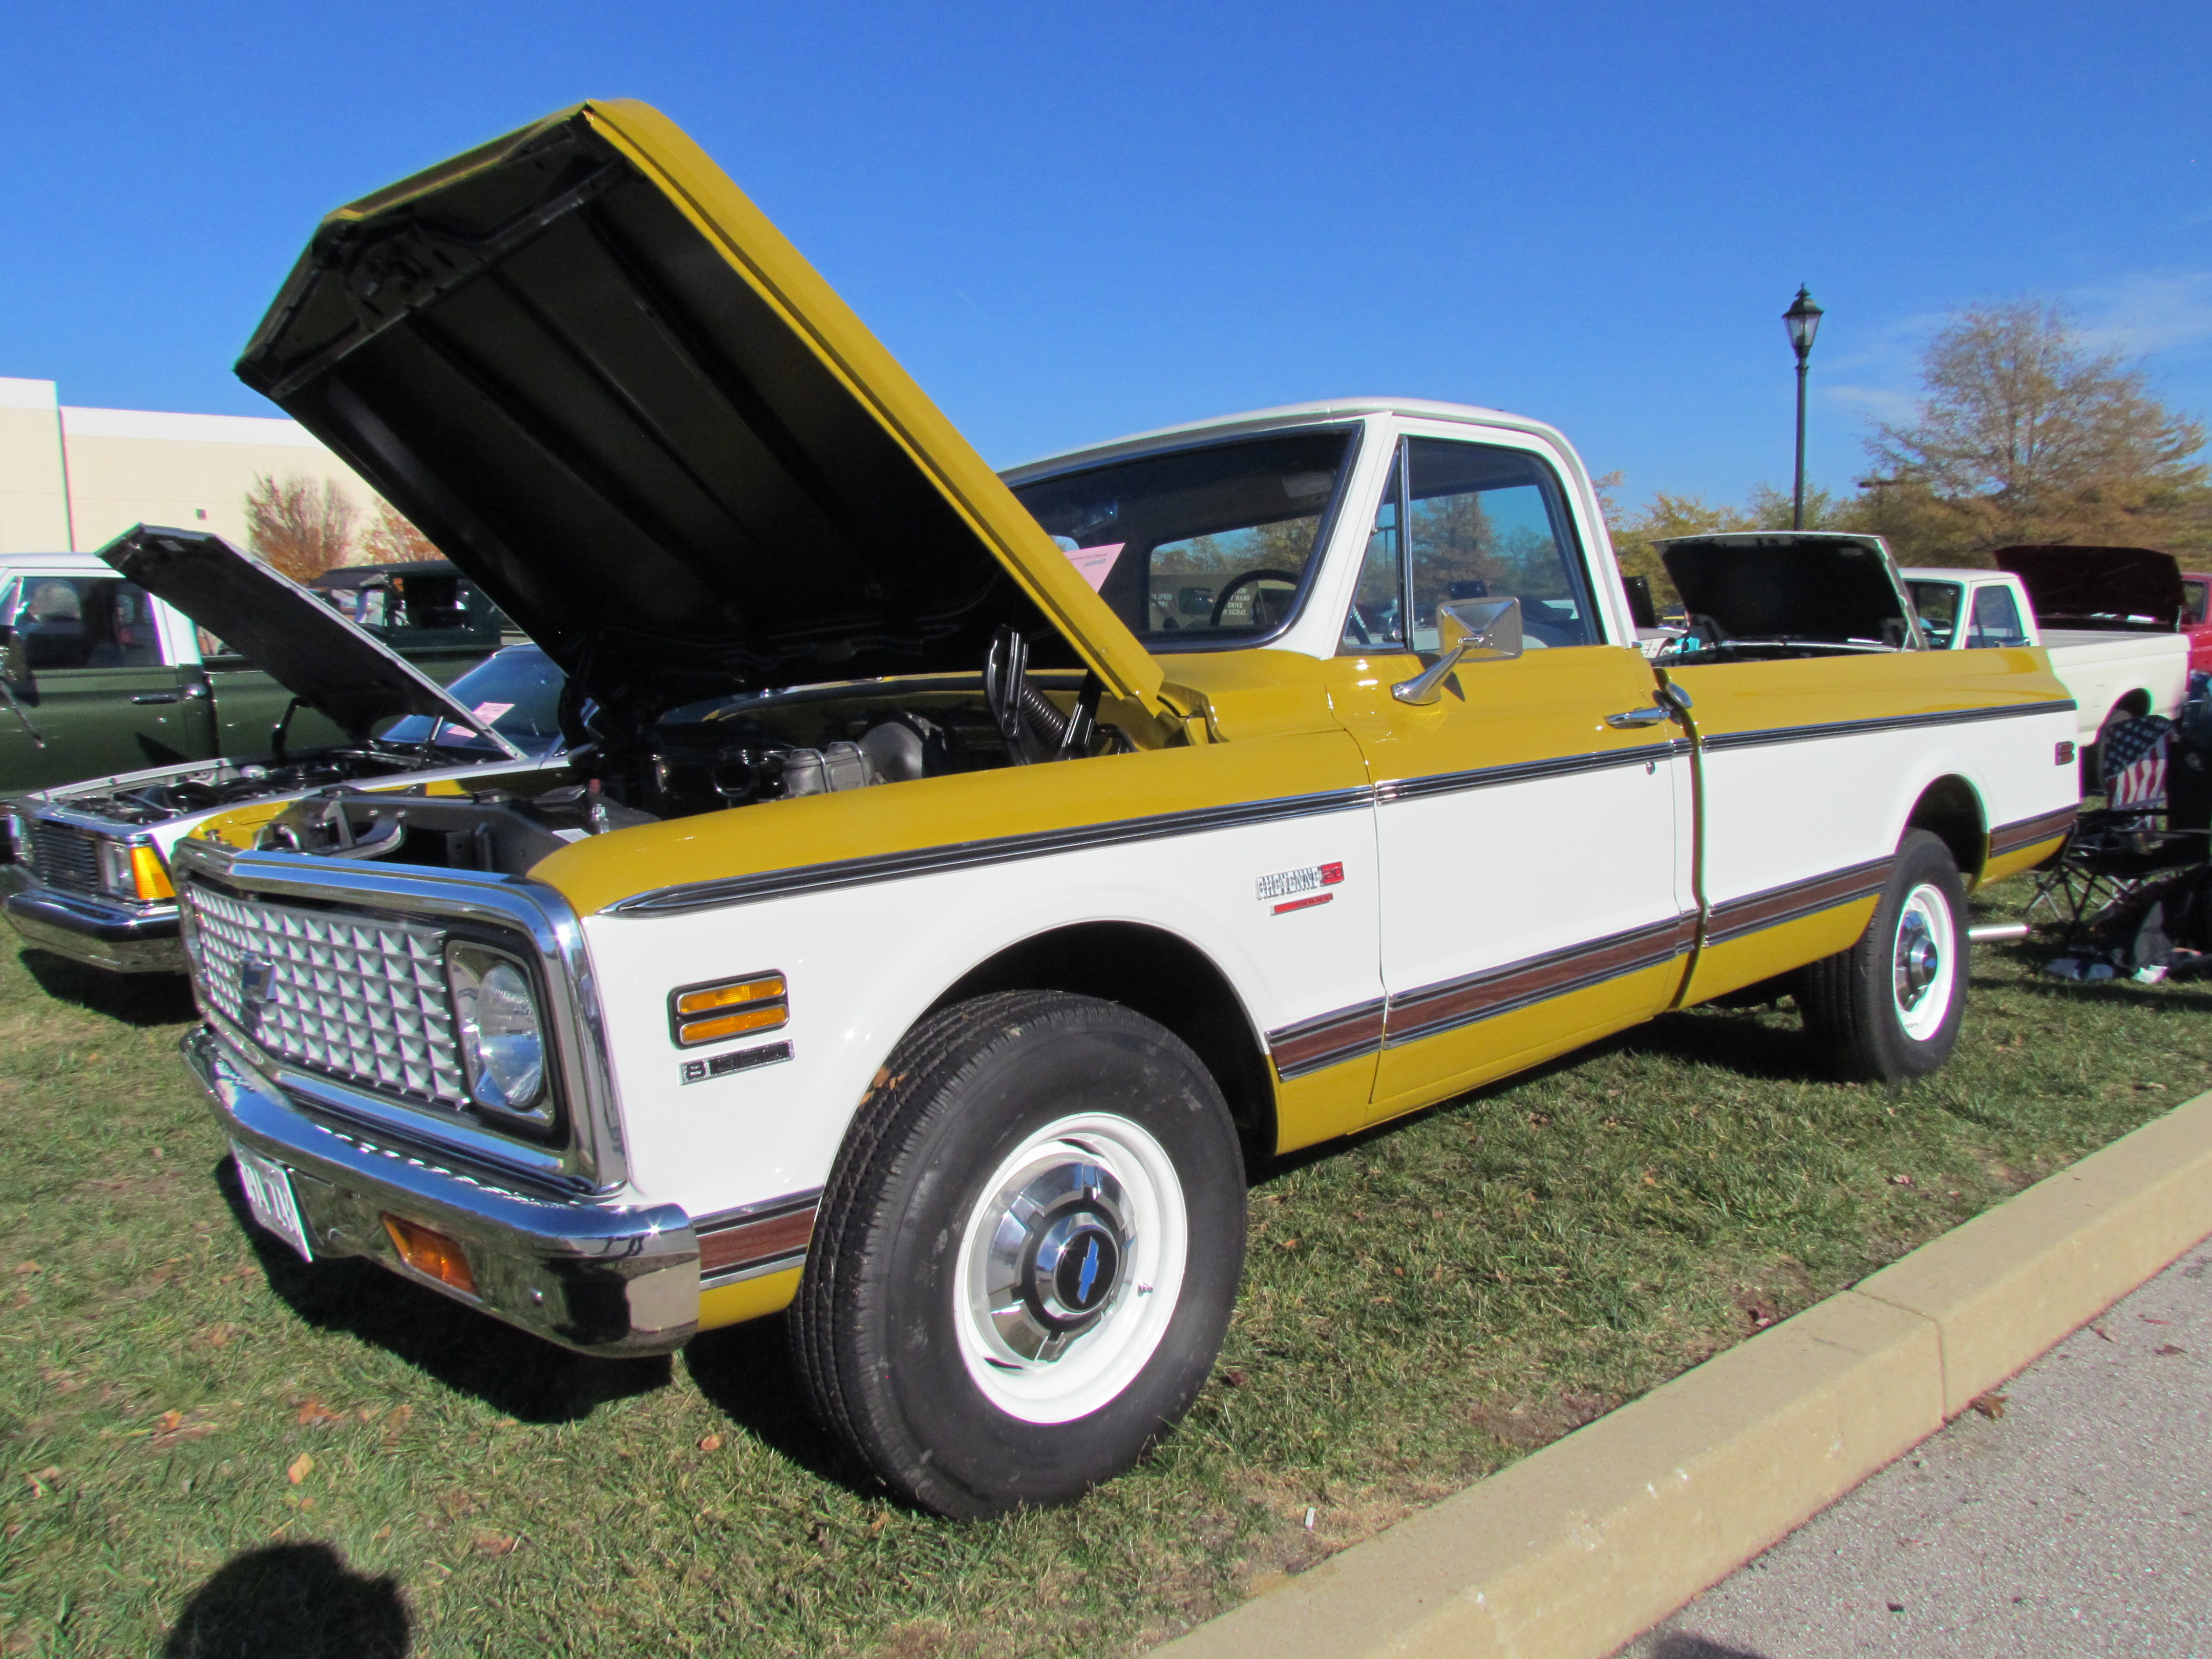 2020 AACA Fall Meet: The Coolest Cars And Trucks Of The 1960s, 1970s, 1980s!